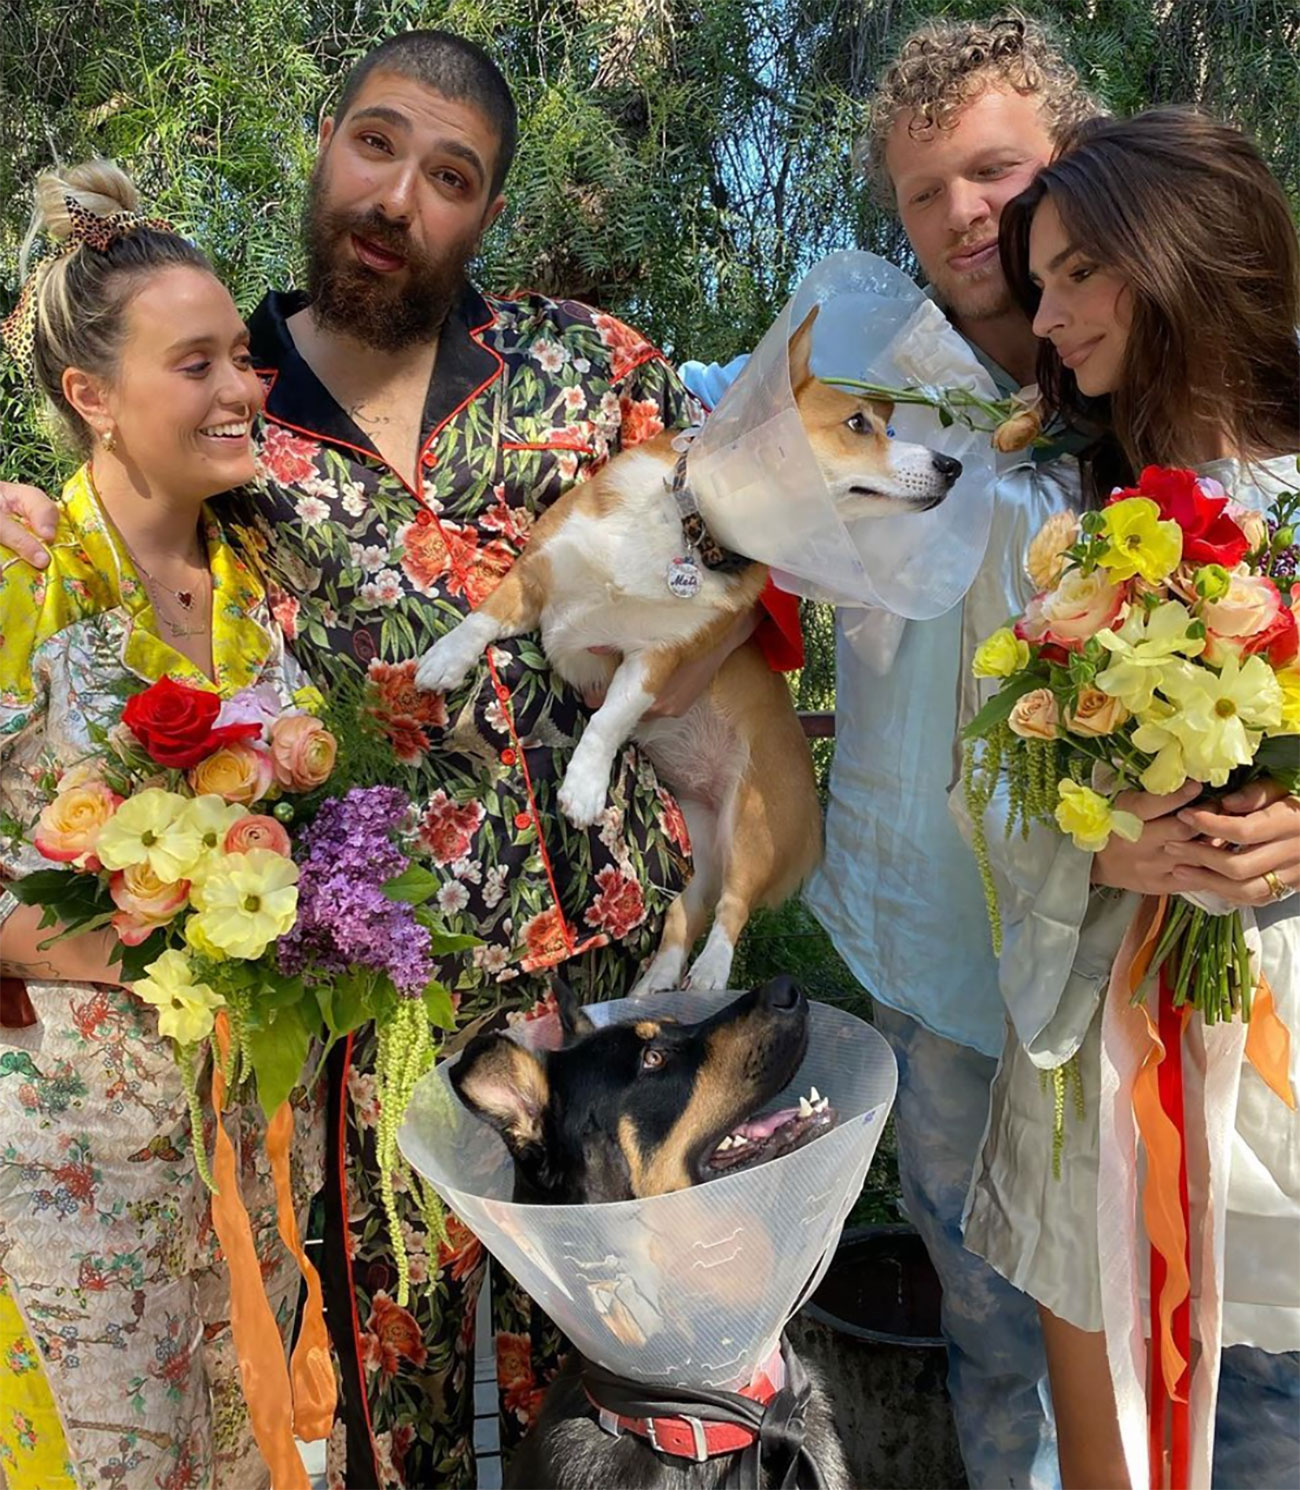 Emily Ratajkowski has wedding for dogs